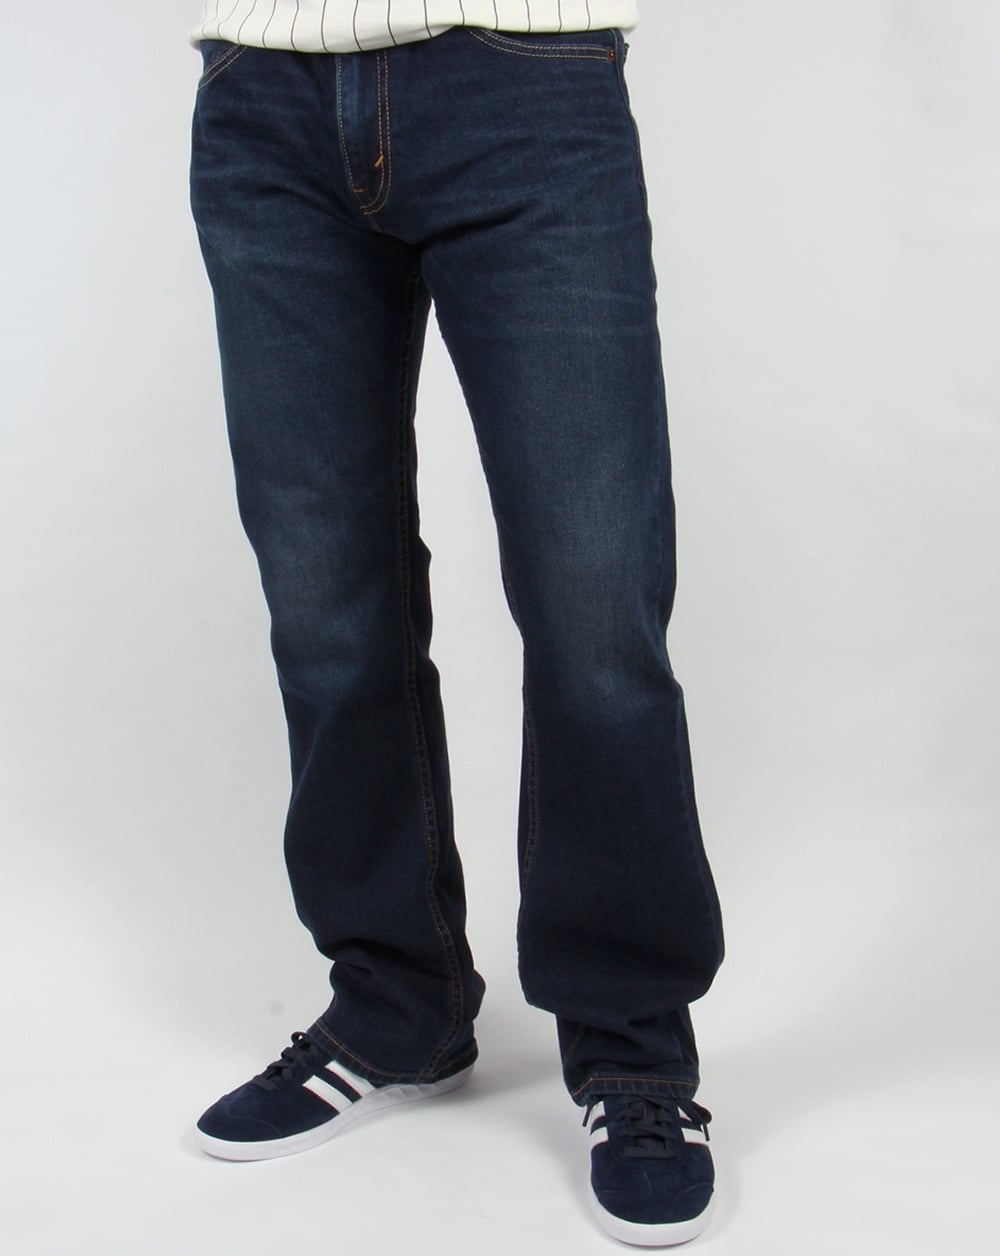 Shop Boot Barn's complete assortment of Men's Bootcut Jeans from brands including: Wrangler, Ariat, Stetson, Cinch, and more!